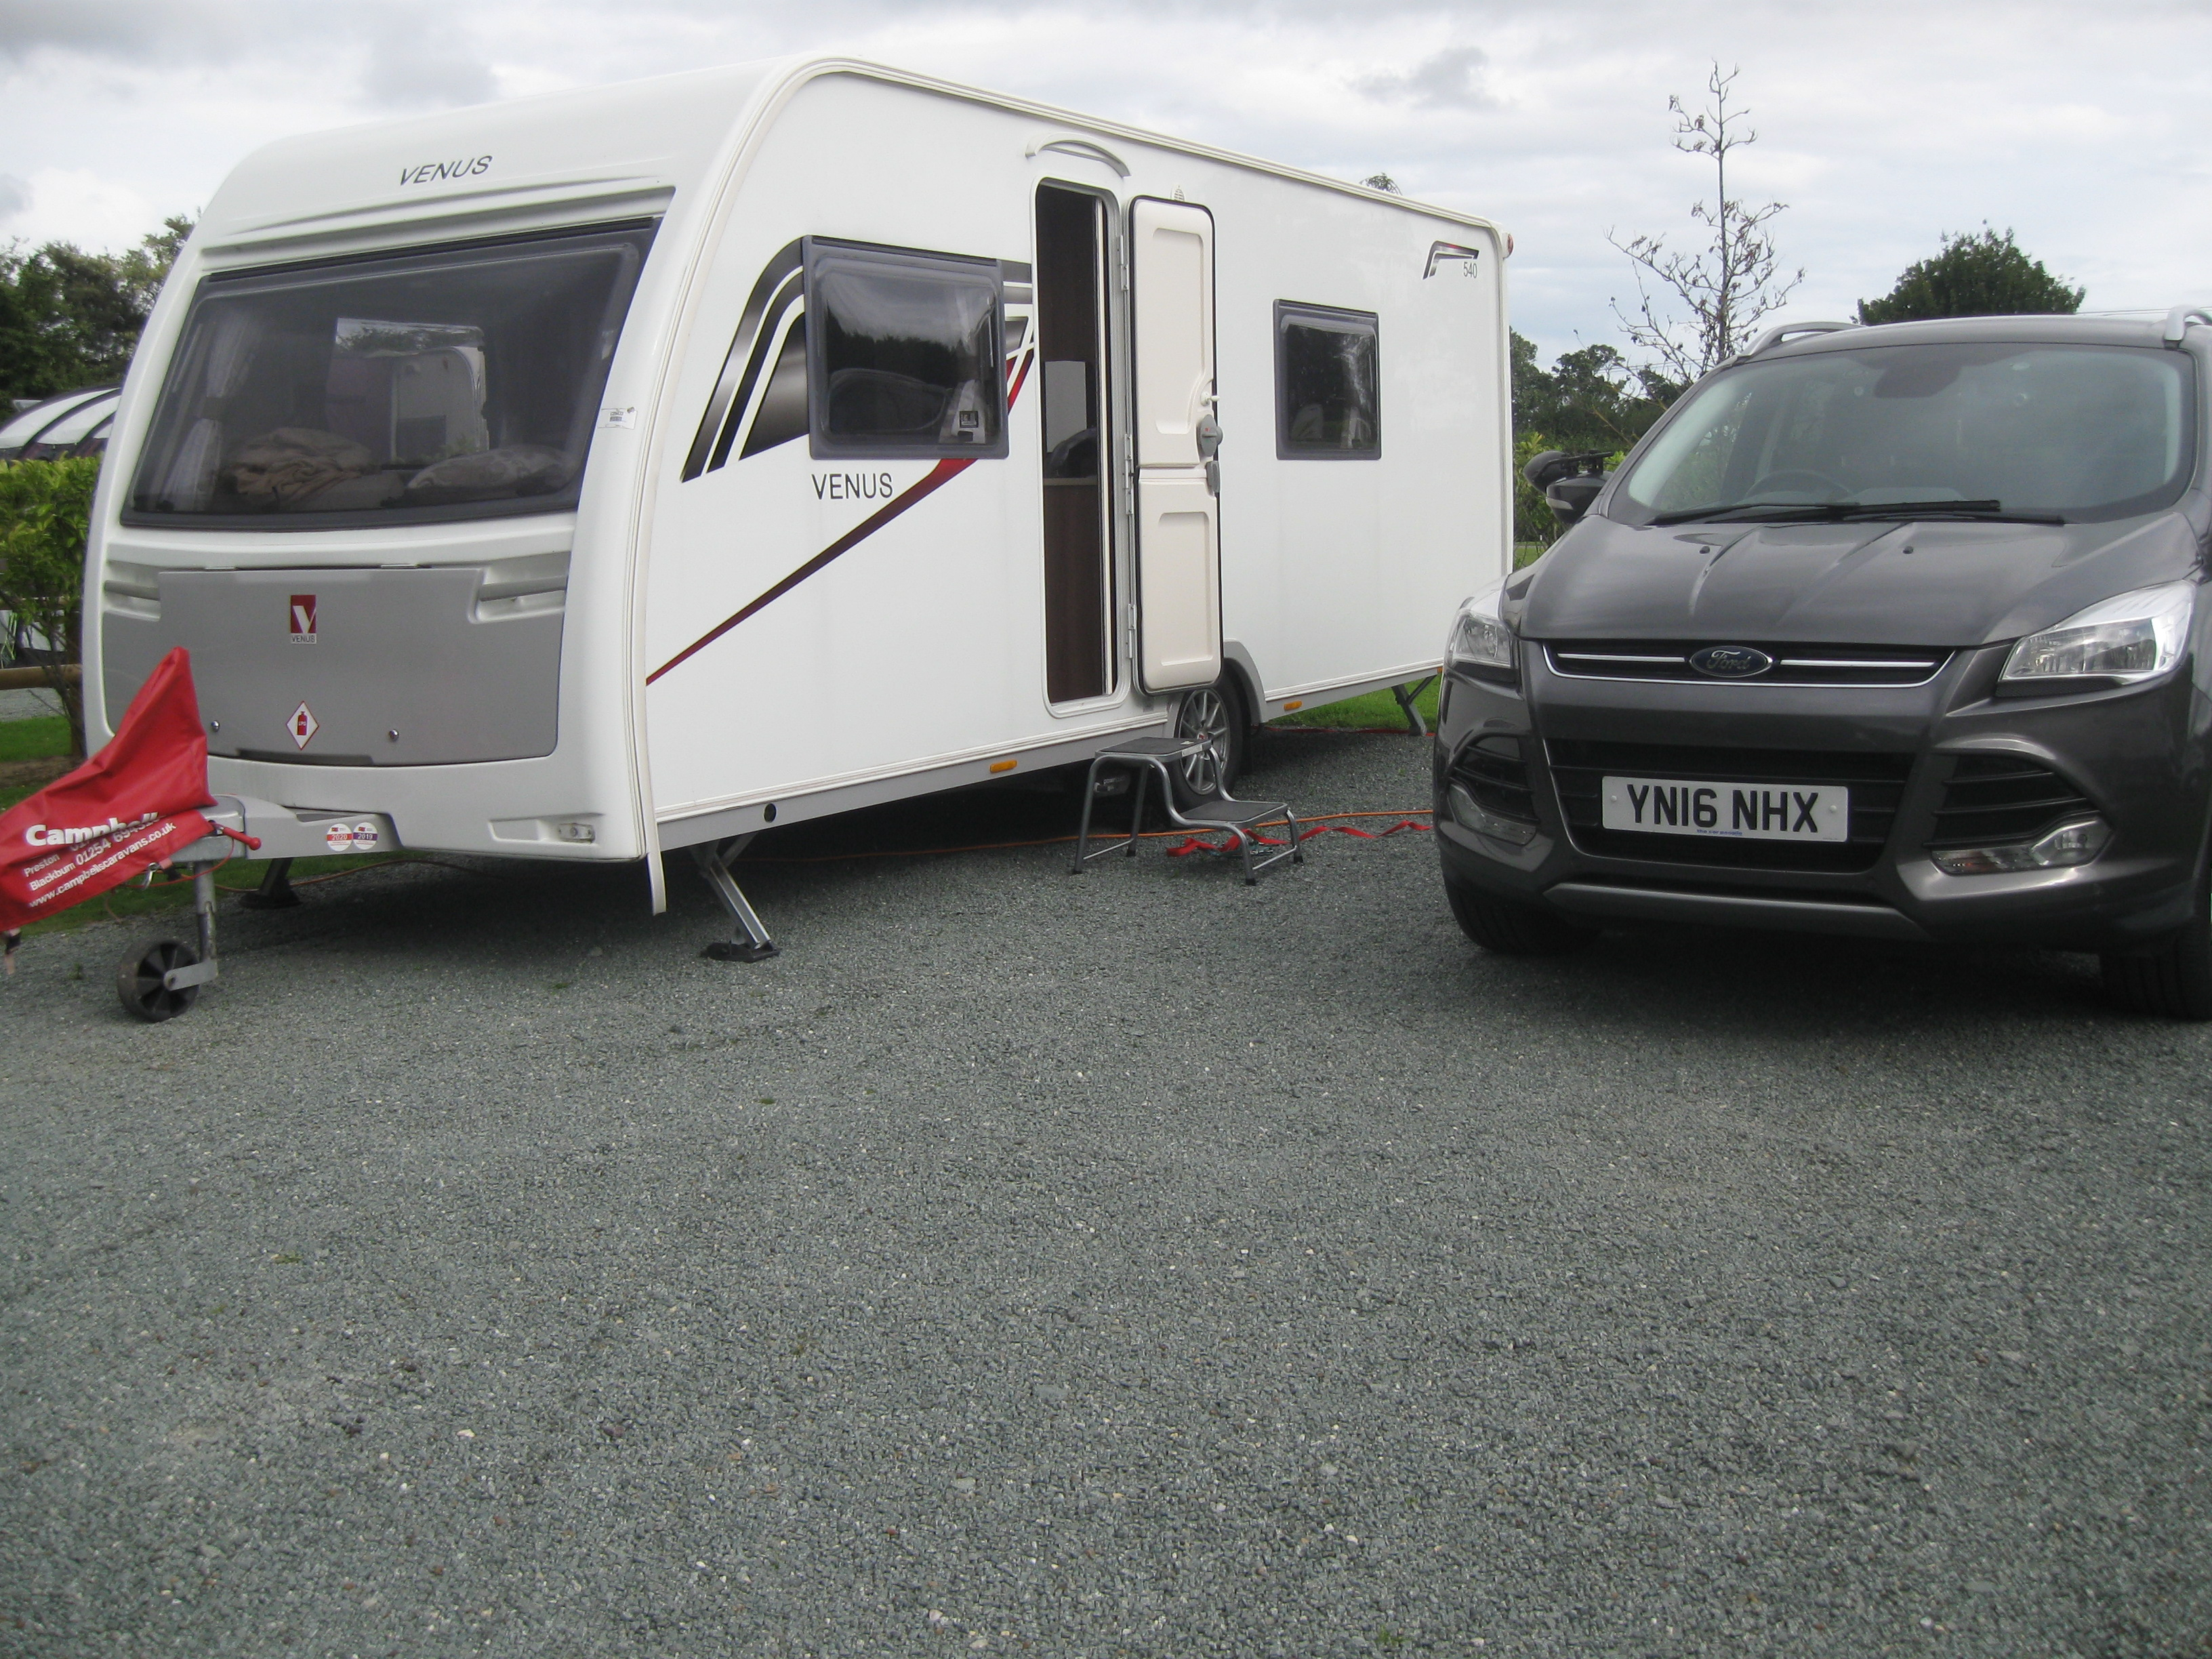 Oxon Hall Caravan Site, Shrewsbury-001.jpg